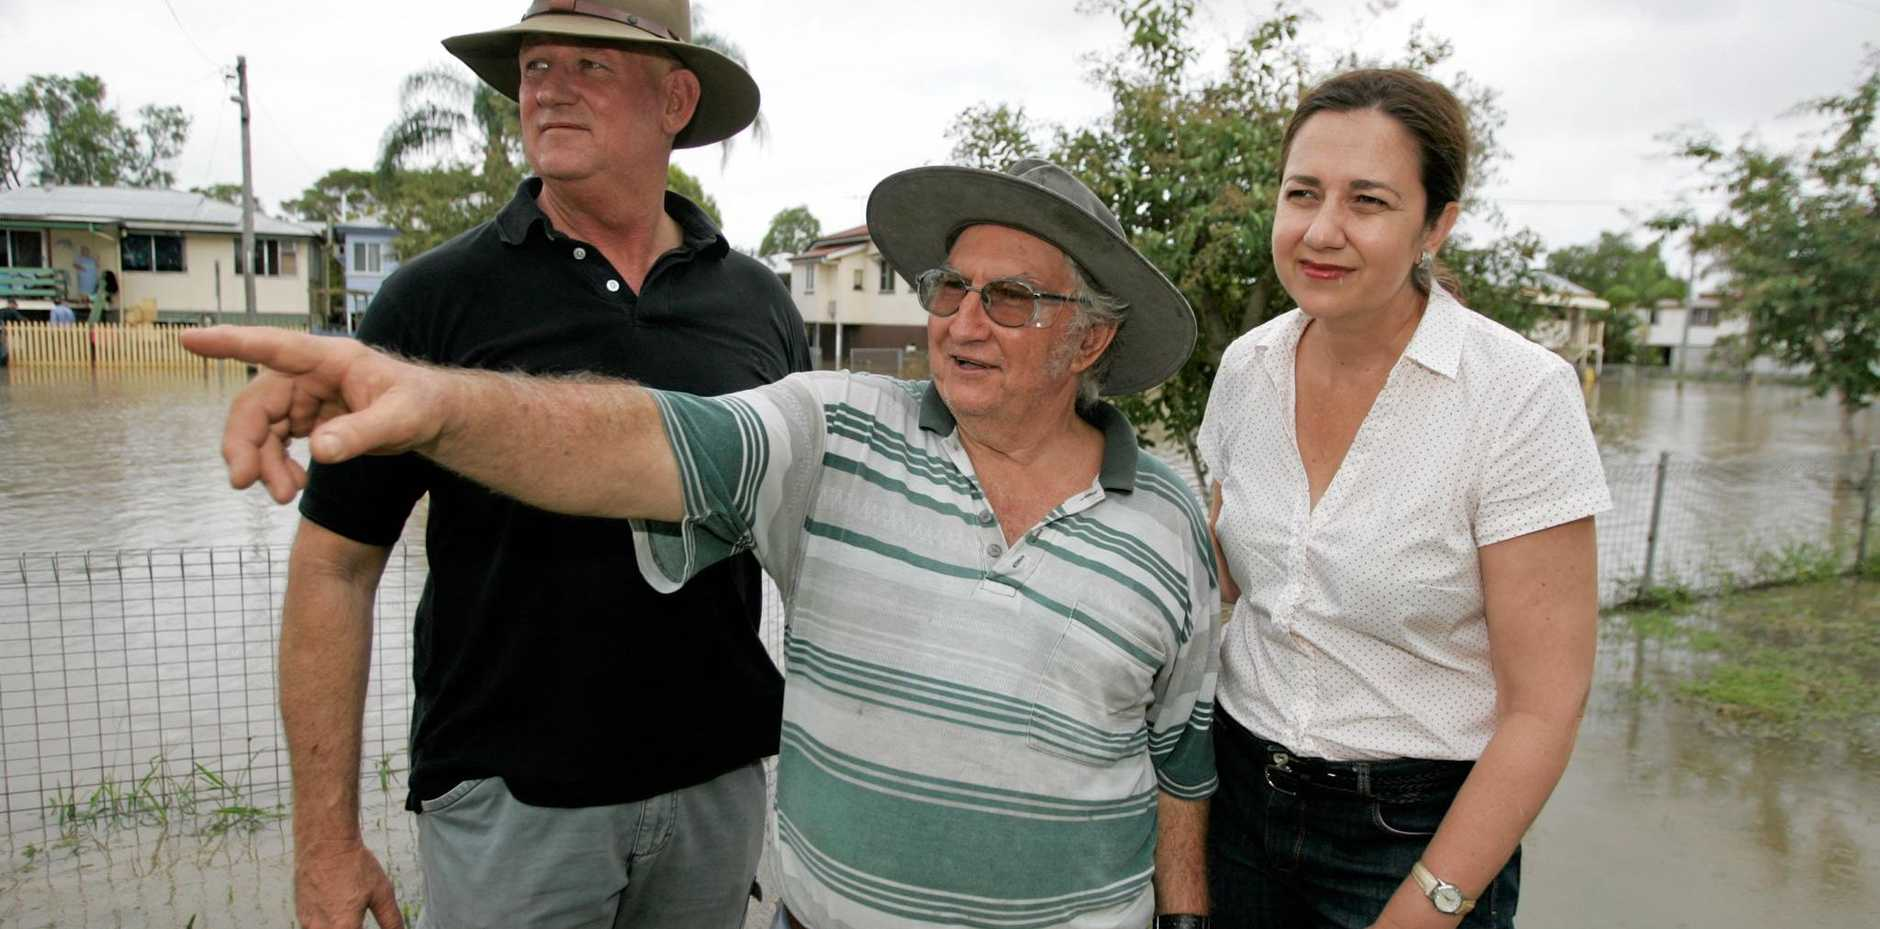 A war of words has erupted between the State and Federal Governments over flood funding. Pictured in 2013 is Depot Hill resident Wayne Wisley (centre) points to where the flood waters came up to in 2010 as L-R local member Bill Byrne and opposition leader Annastacia Palaszczuk look on as the Fitzroy River rises past 8.2 to an estimated 8.5 peak at Rockhampton.